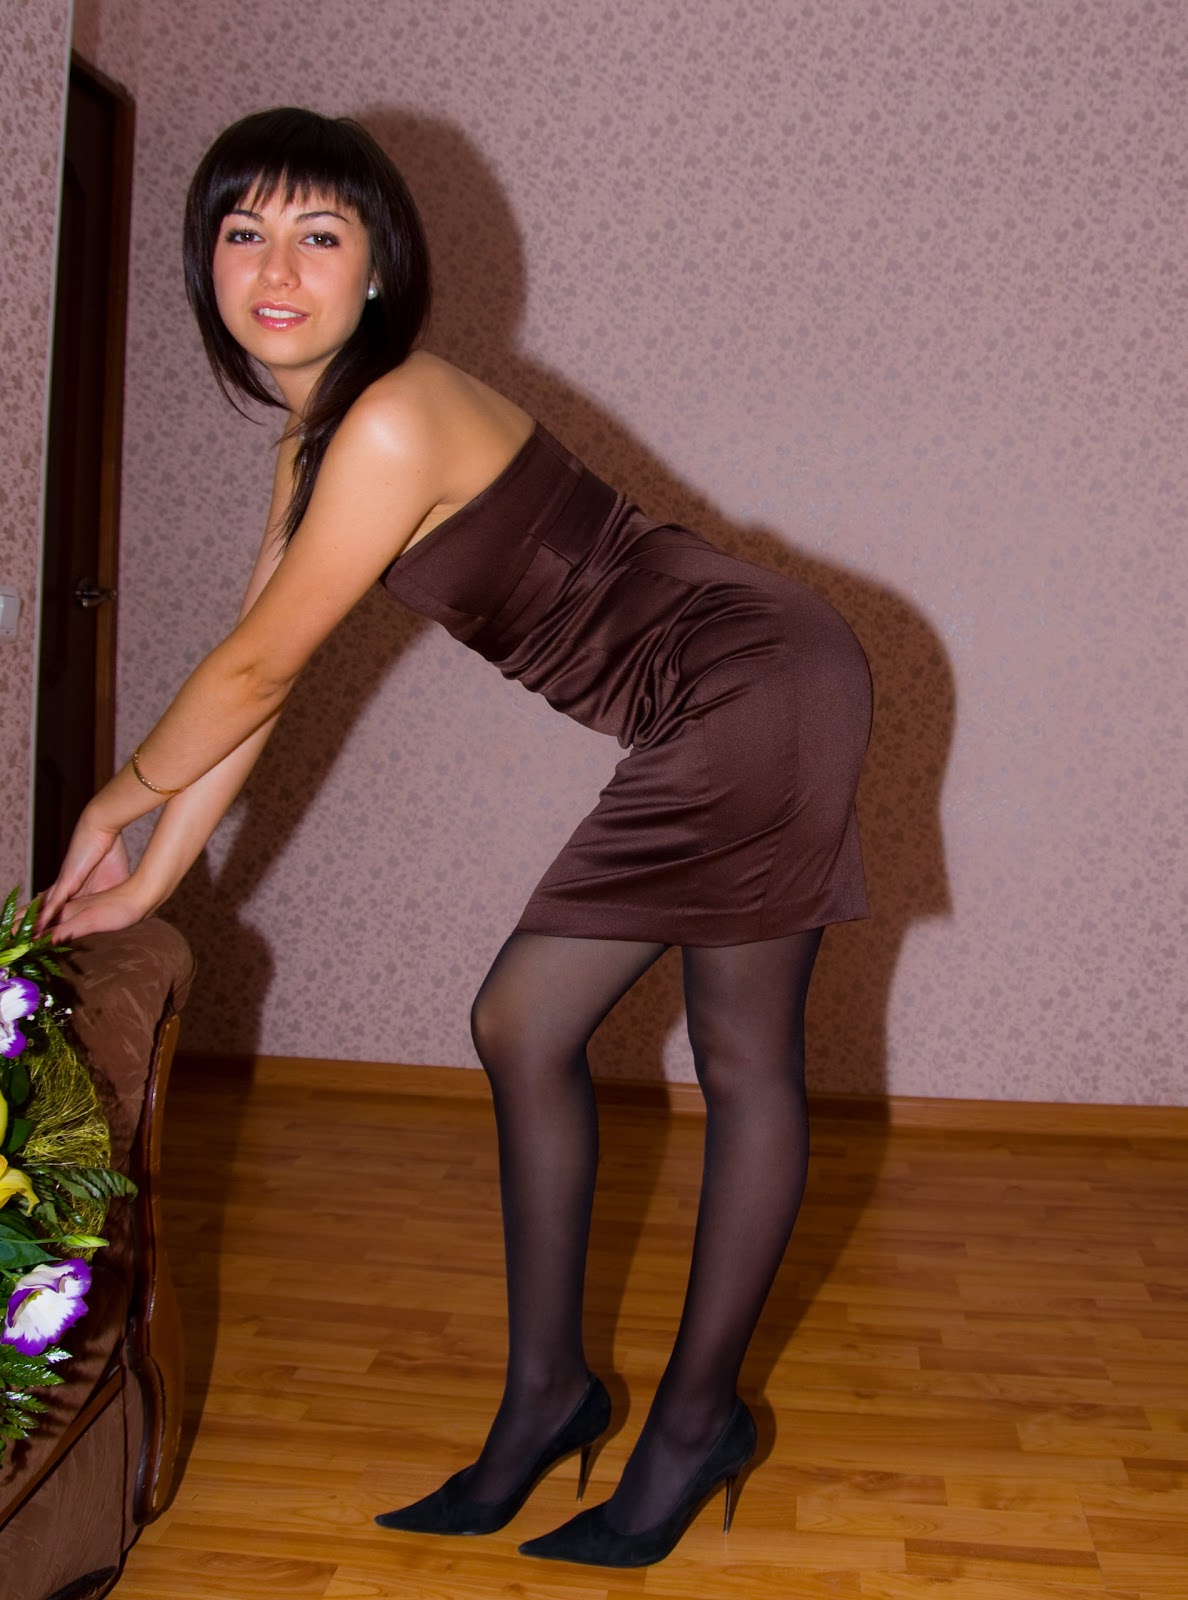 severance asian singles Meet single women over 50 in severance is it that time in your life that you are ready to find a single woman over 50 that's looking to find someone like you.